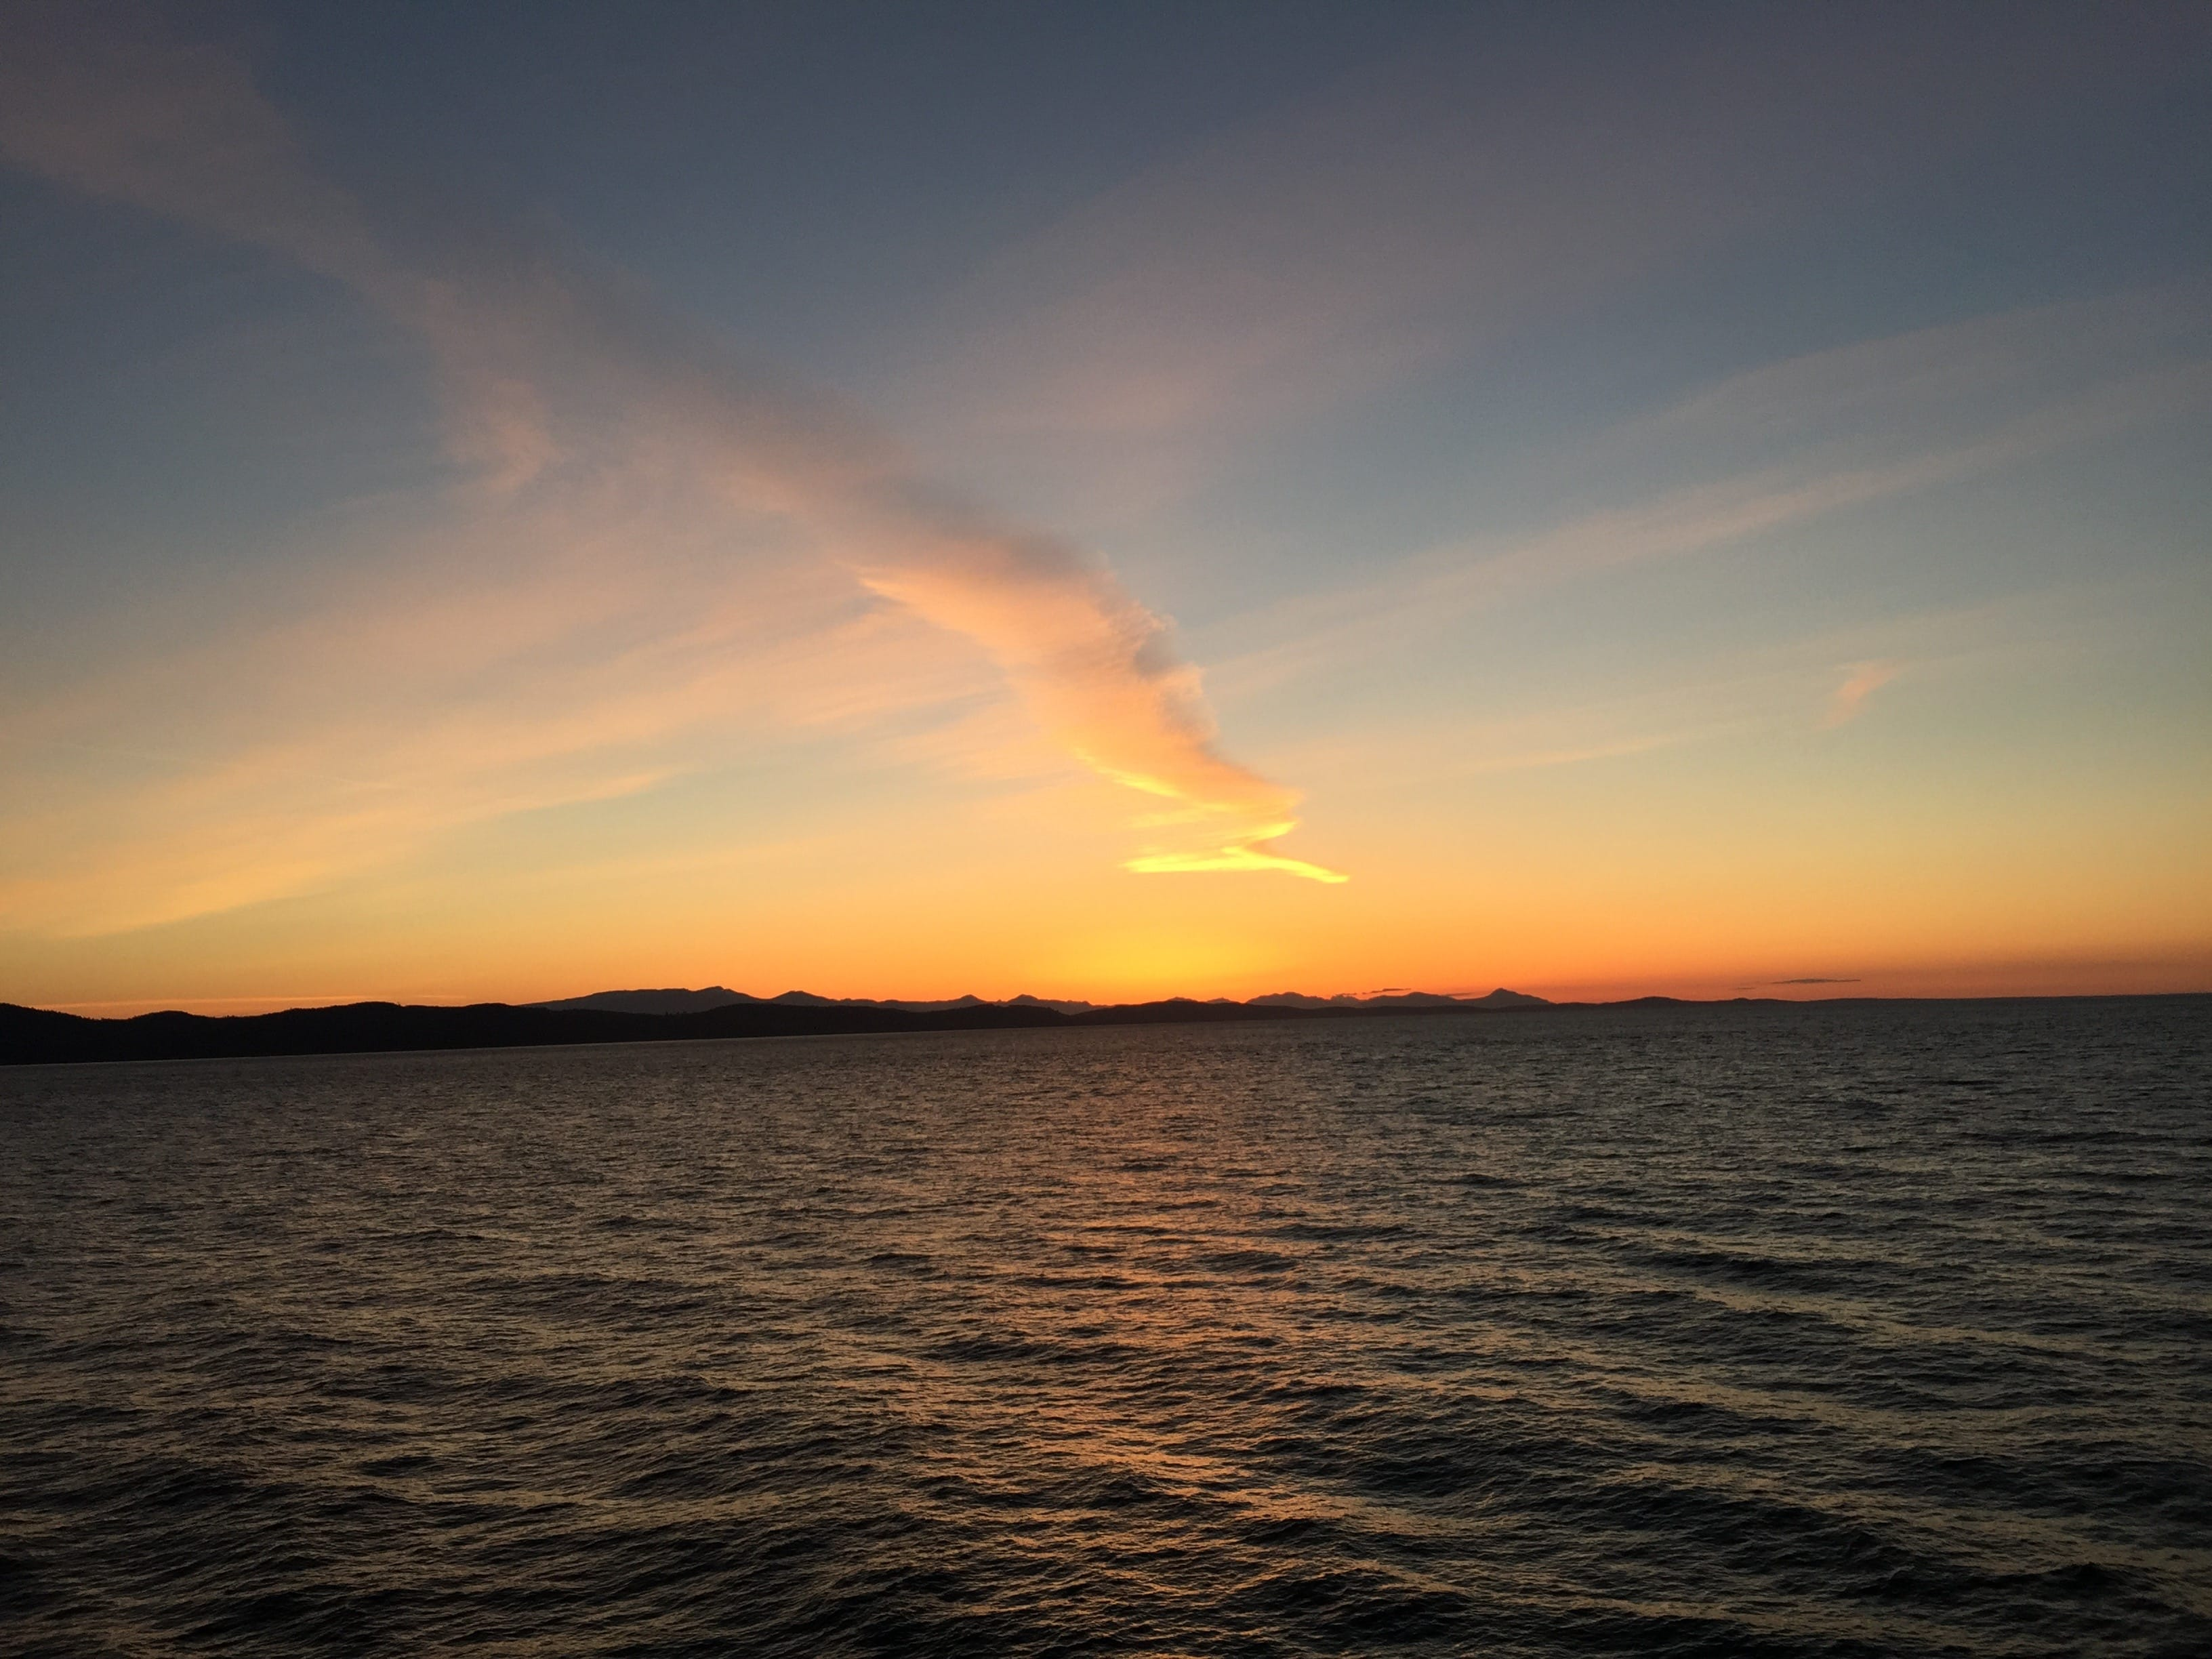 Sunset while on the ferry back to Vancouver from Victoria.